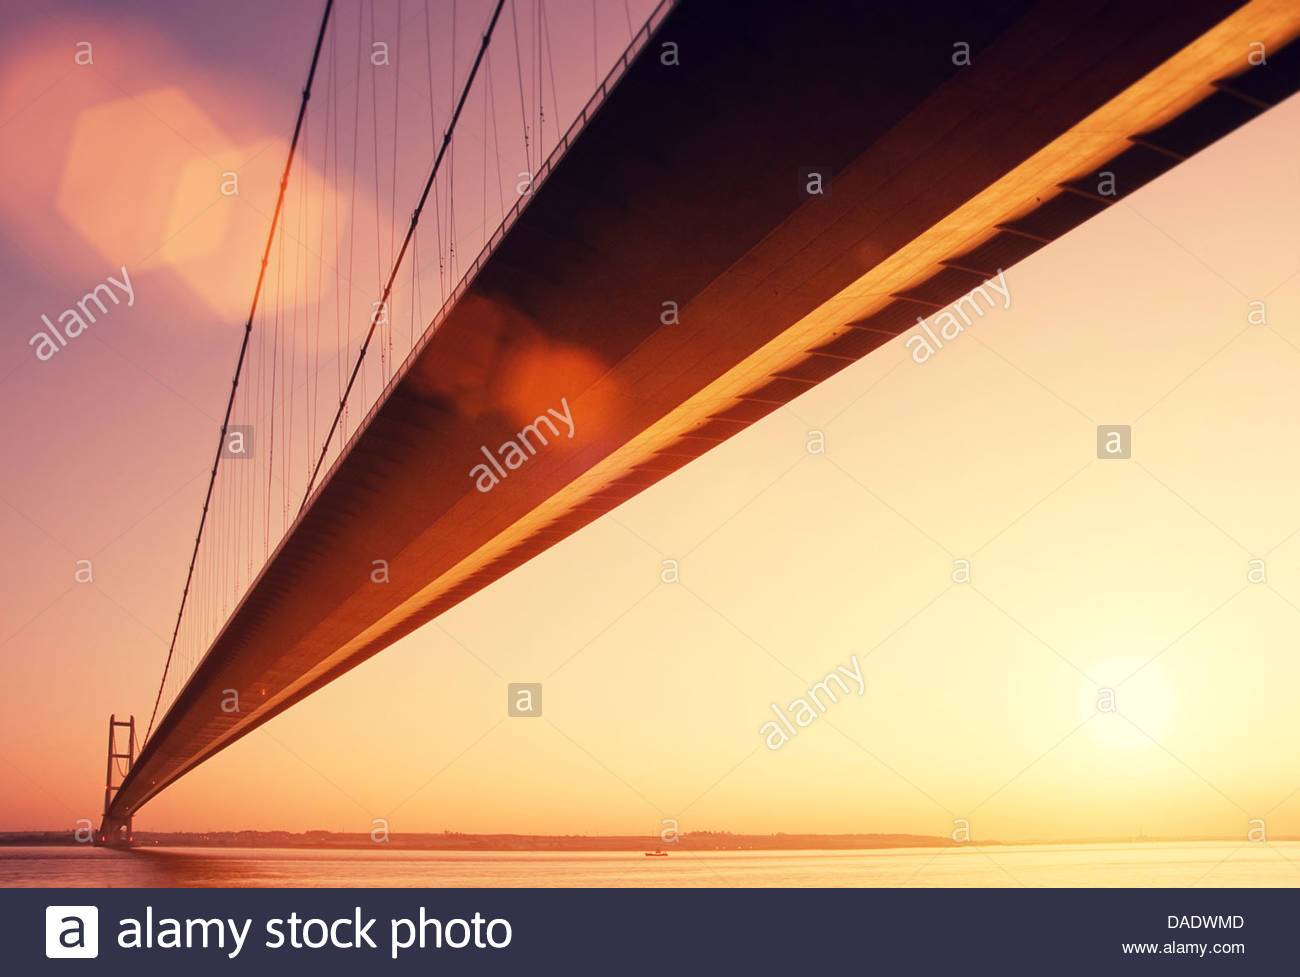 golden hour humber bridge - Stock Image